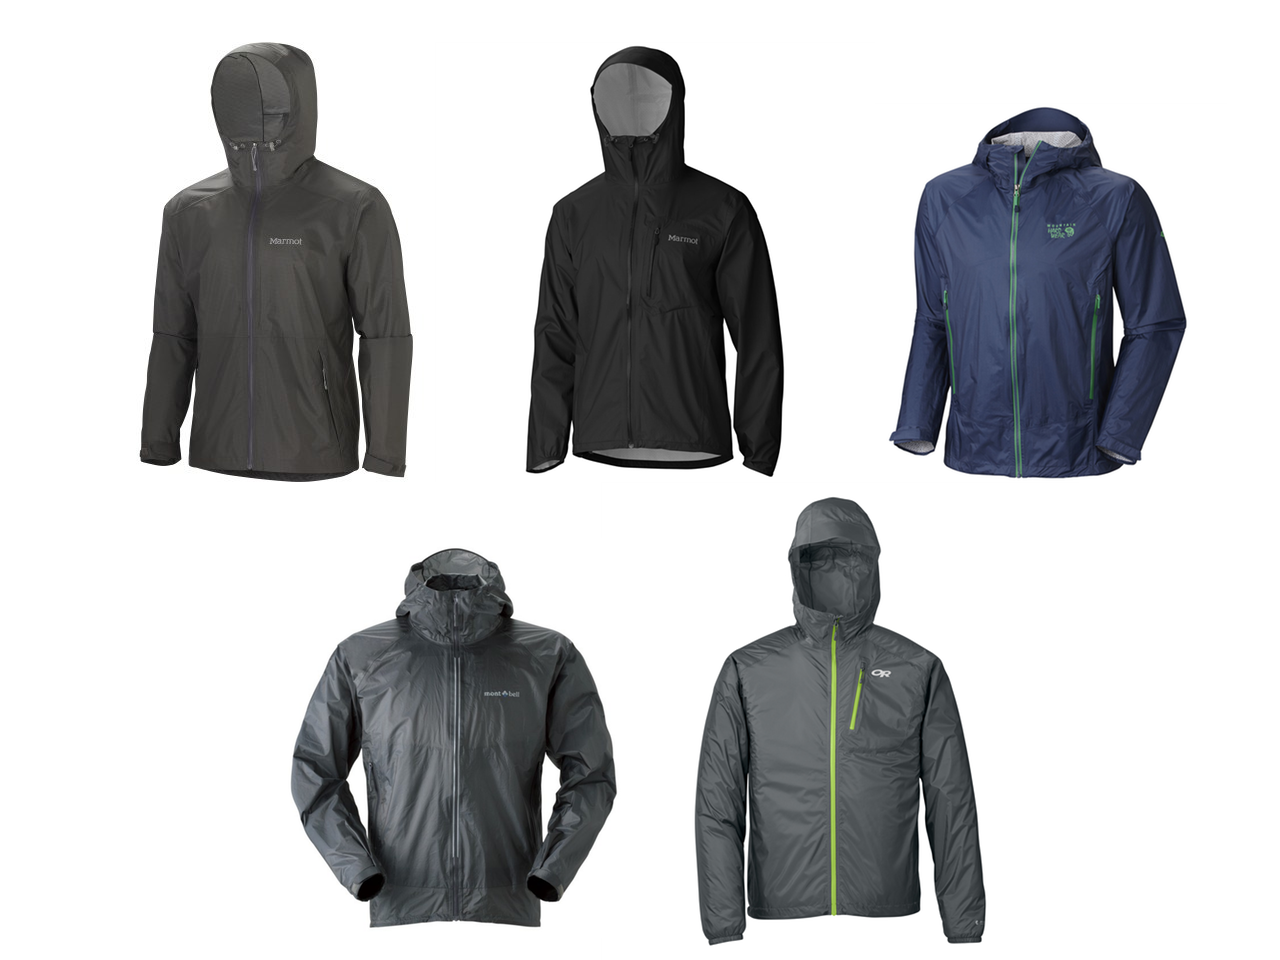 Lightweight Packable Rain Jackets Each Of These Weighs About As Much A T Shirt Maybe Two At Most